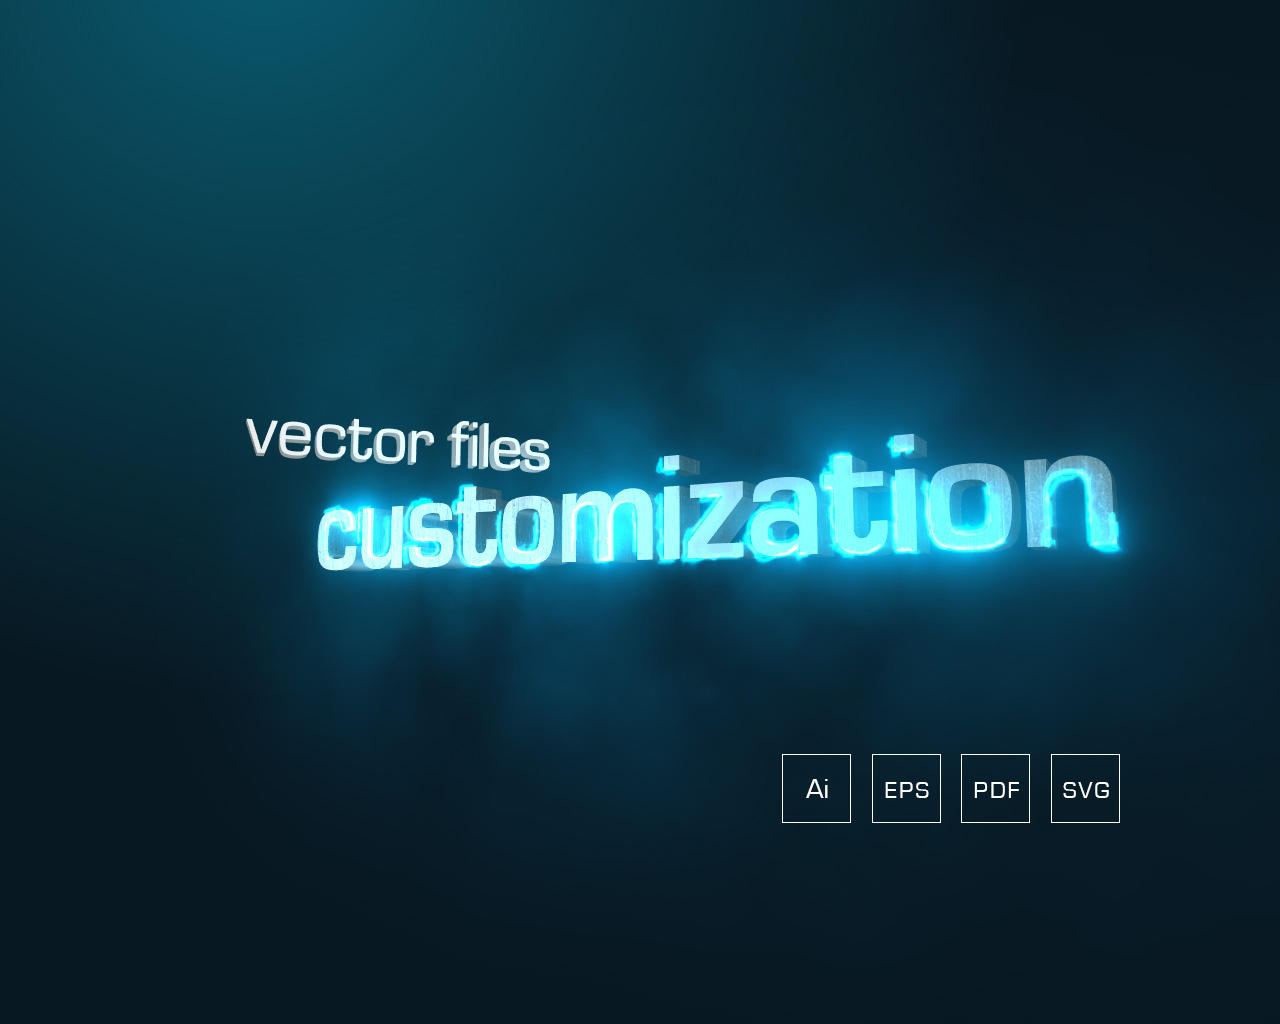 Vector (AI, EPS, PDF, SVG) Files Customization by RenovatioDigital - 104214